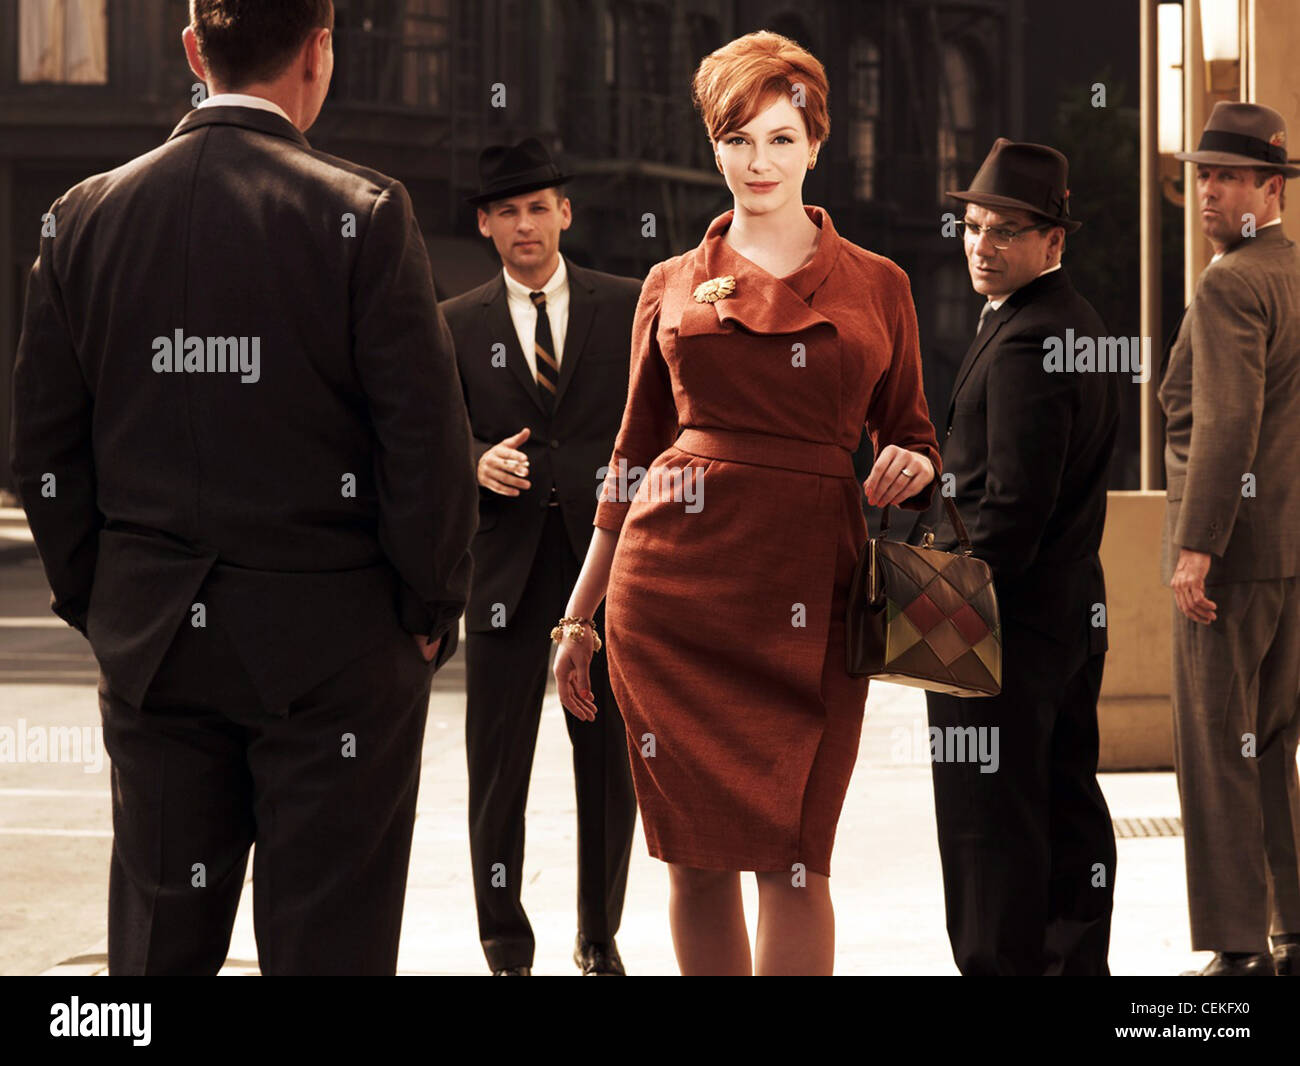 MAD MEN (TV) (2007) CHRISTINA HENDRICKS 004 MOVIESTORE COLLECTION LTD - Stock Image